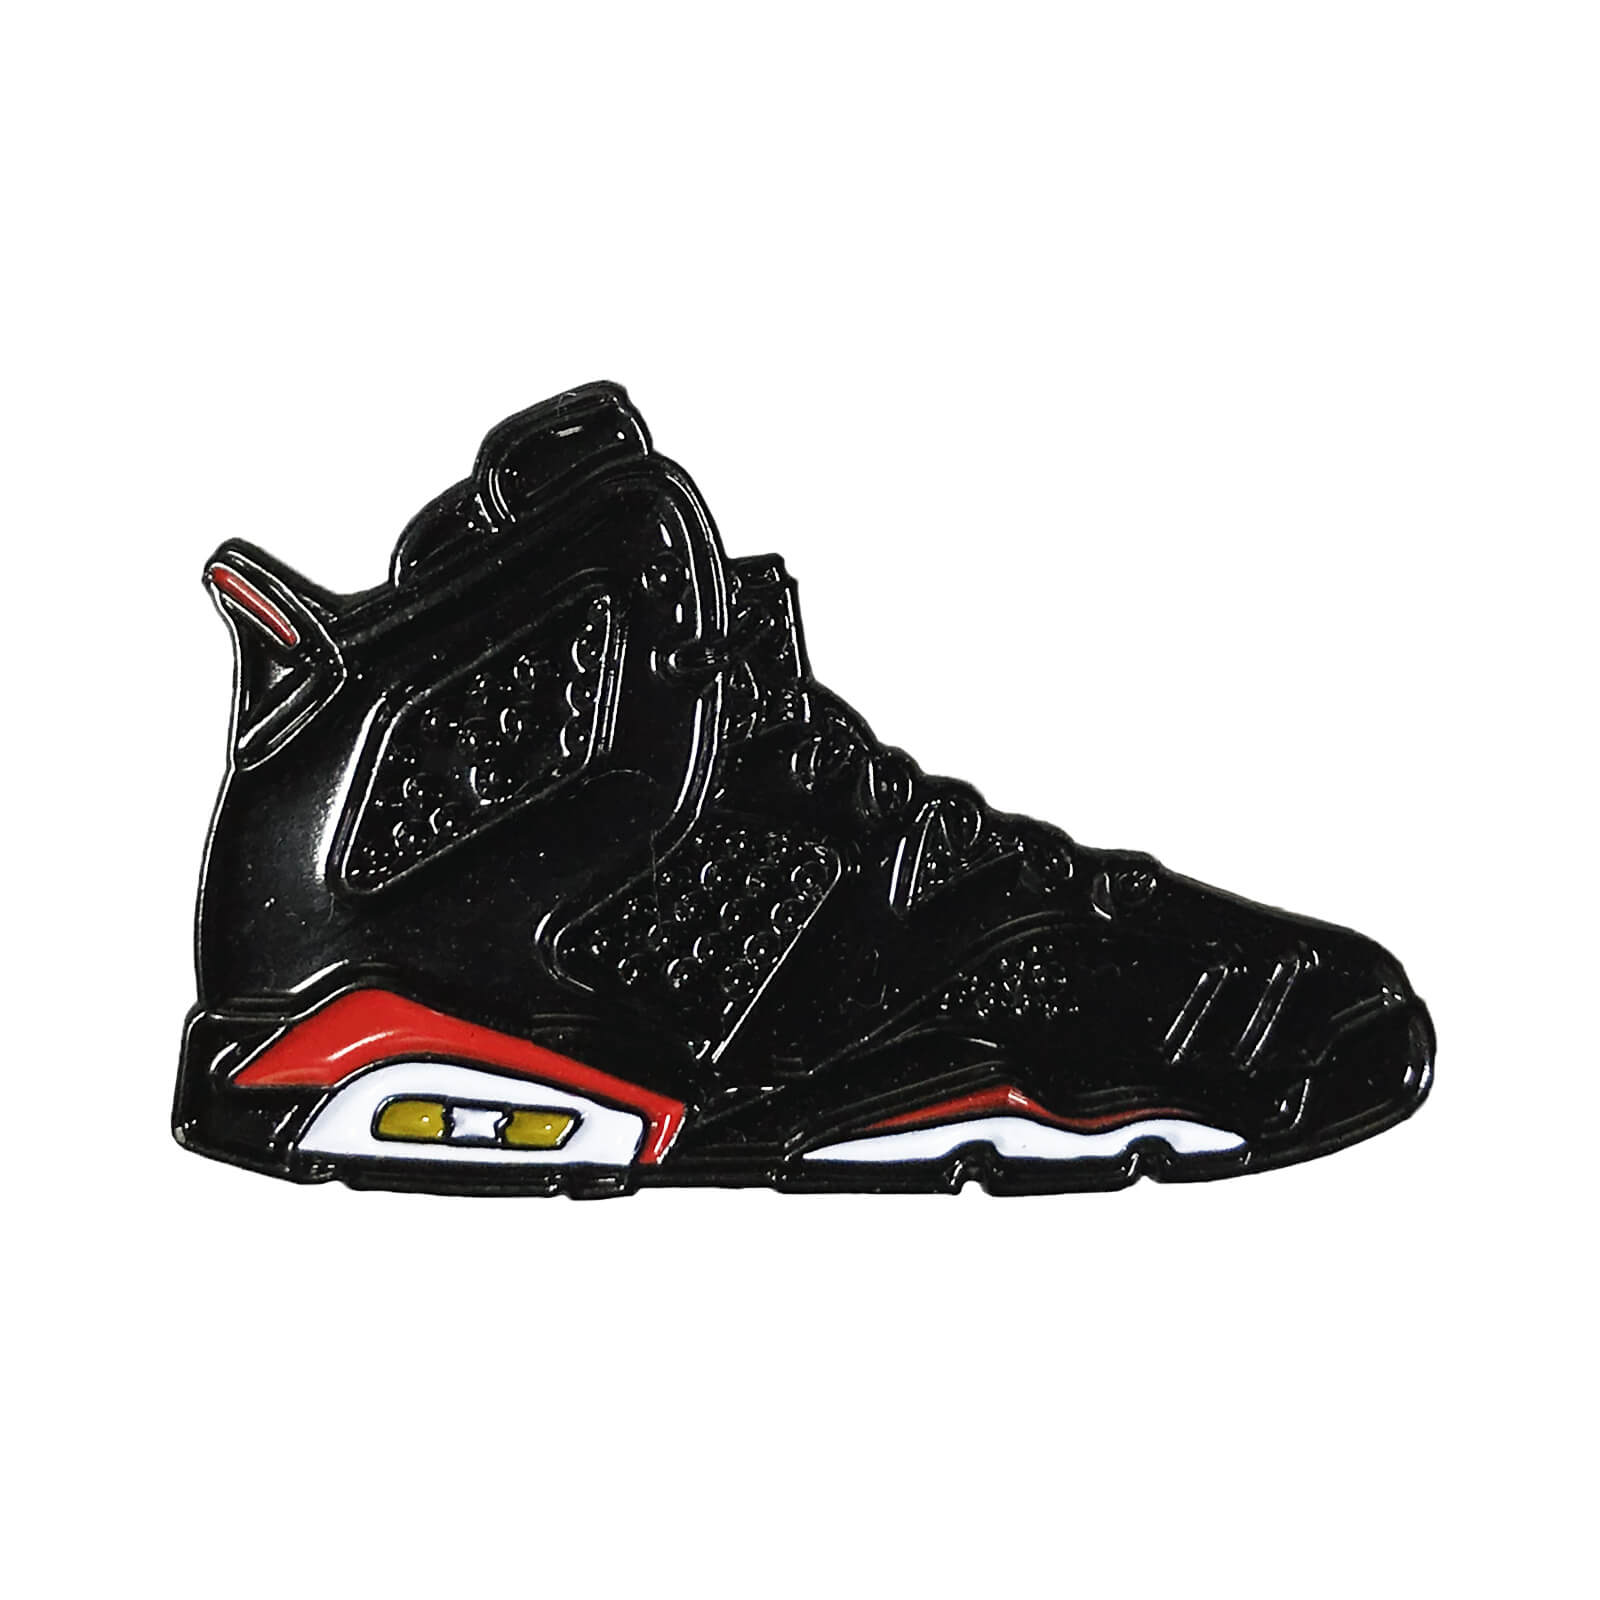 "Air Jordan 6 ""Infrared 2014"" Enamel Pin"